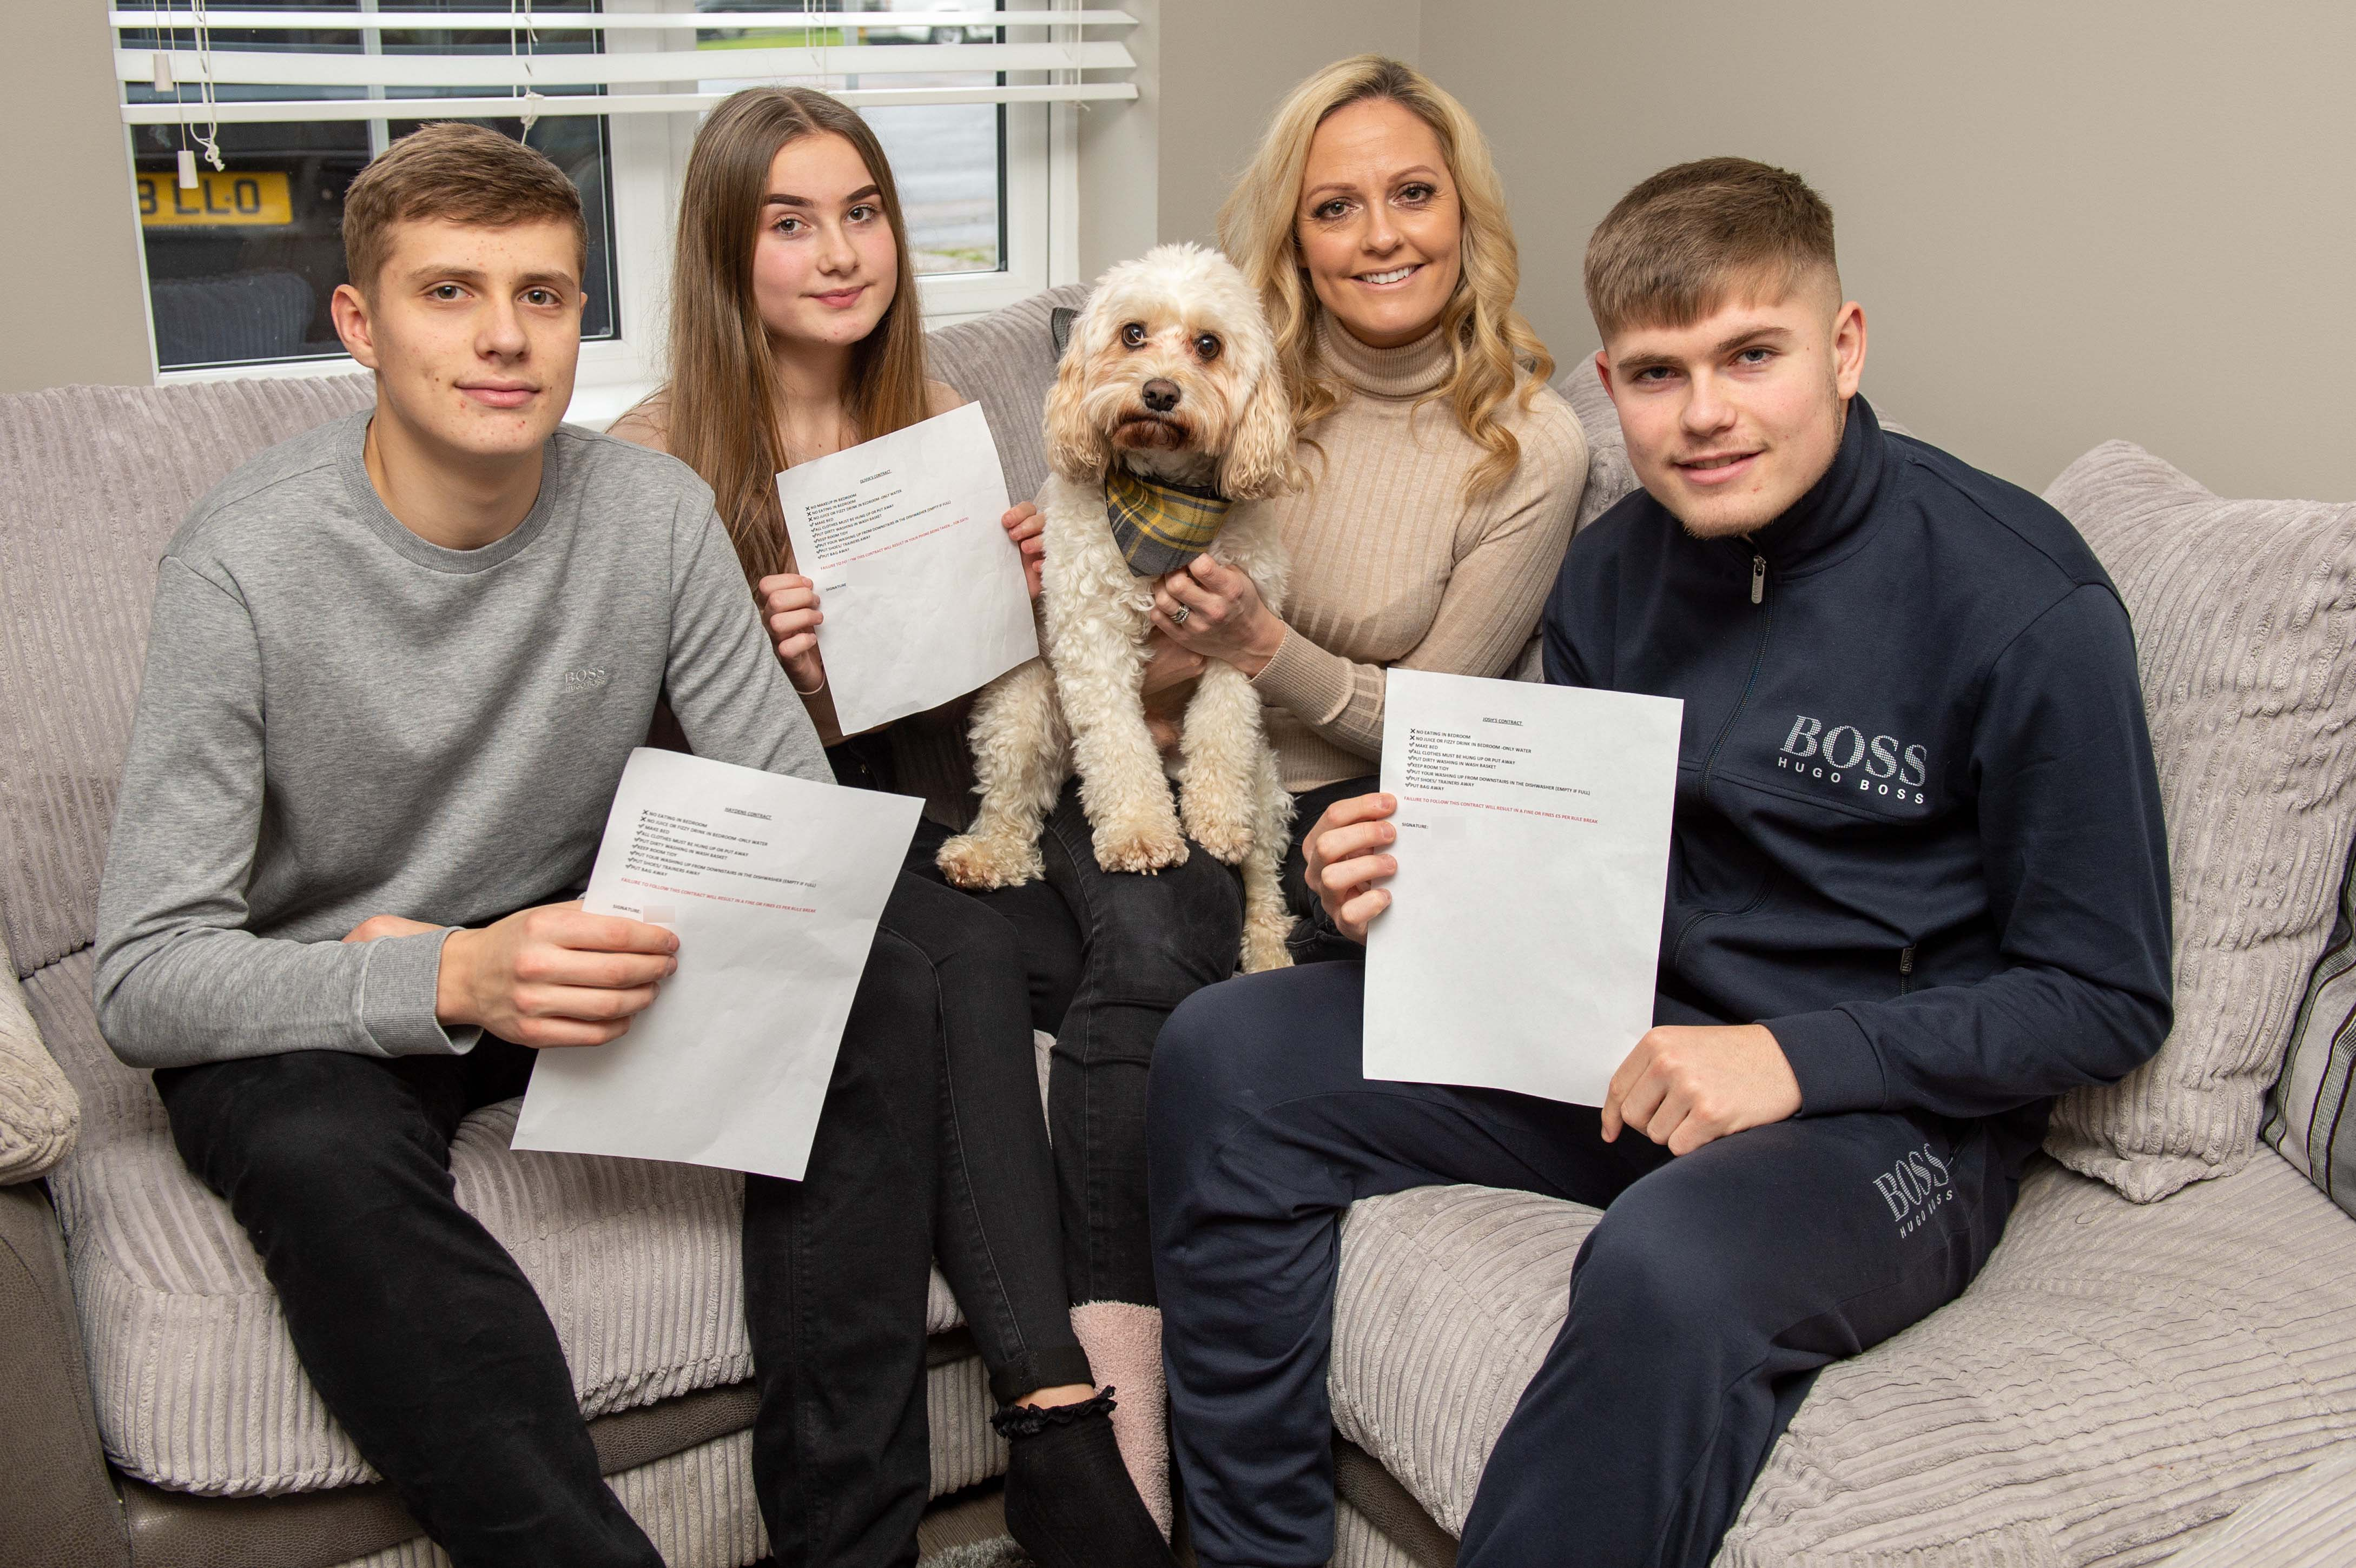 mum makes kids sign cleaning contracts